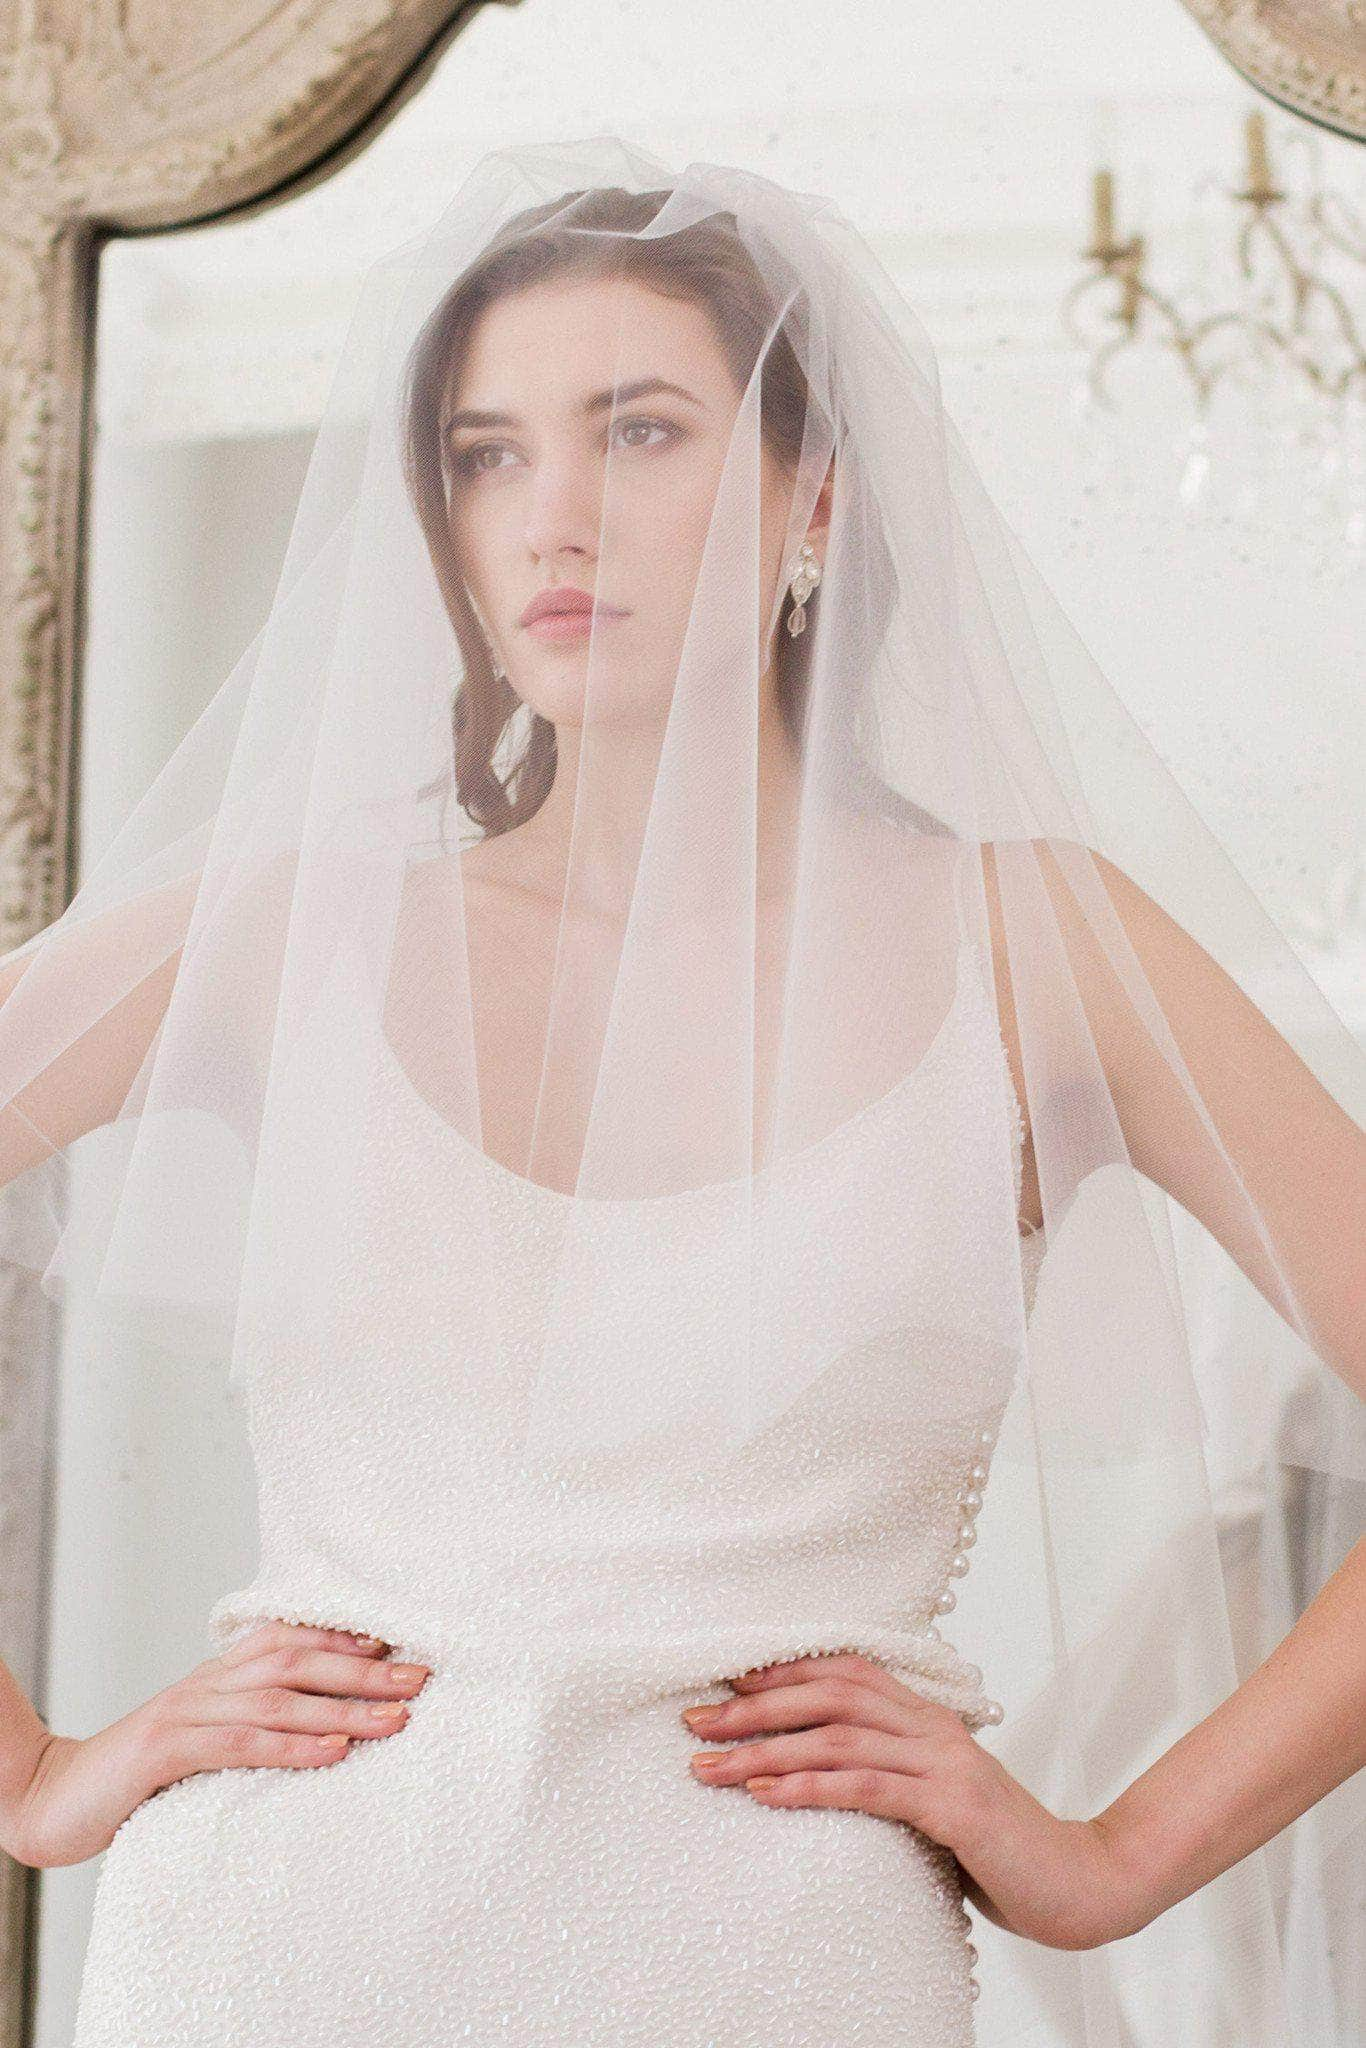 What is a Two Tier Veil? | Fingertip Length Two Tier Cut Edge Wedding Veil - 'Saria' | Britten Weddings